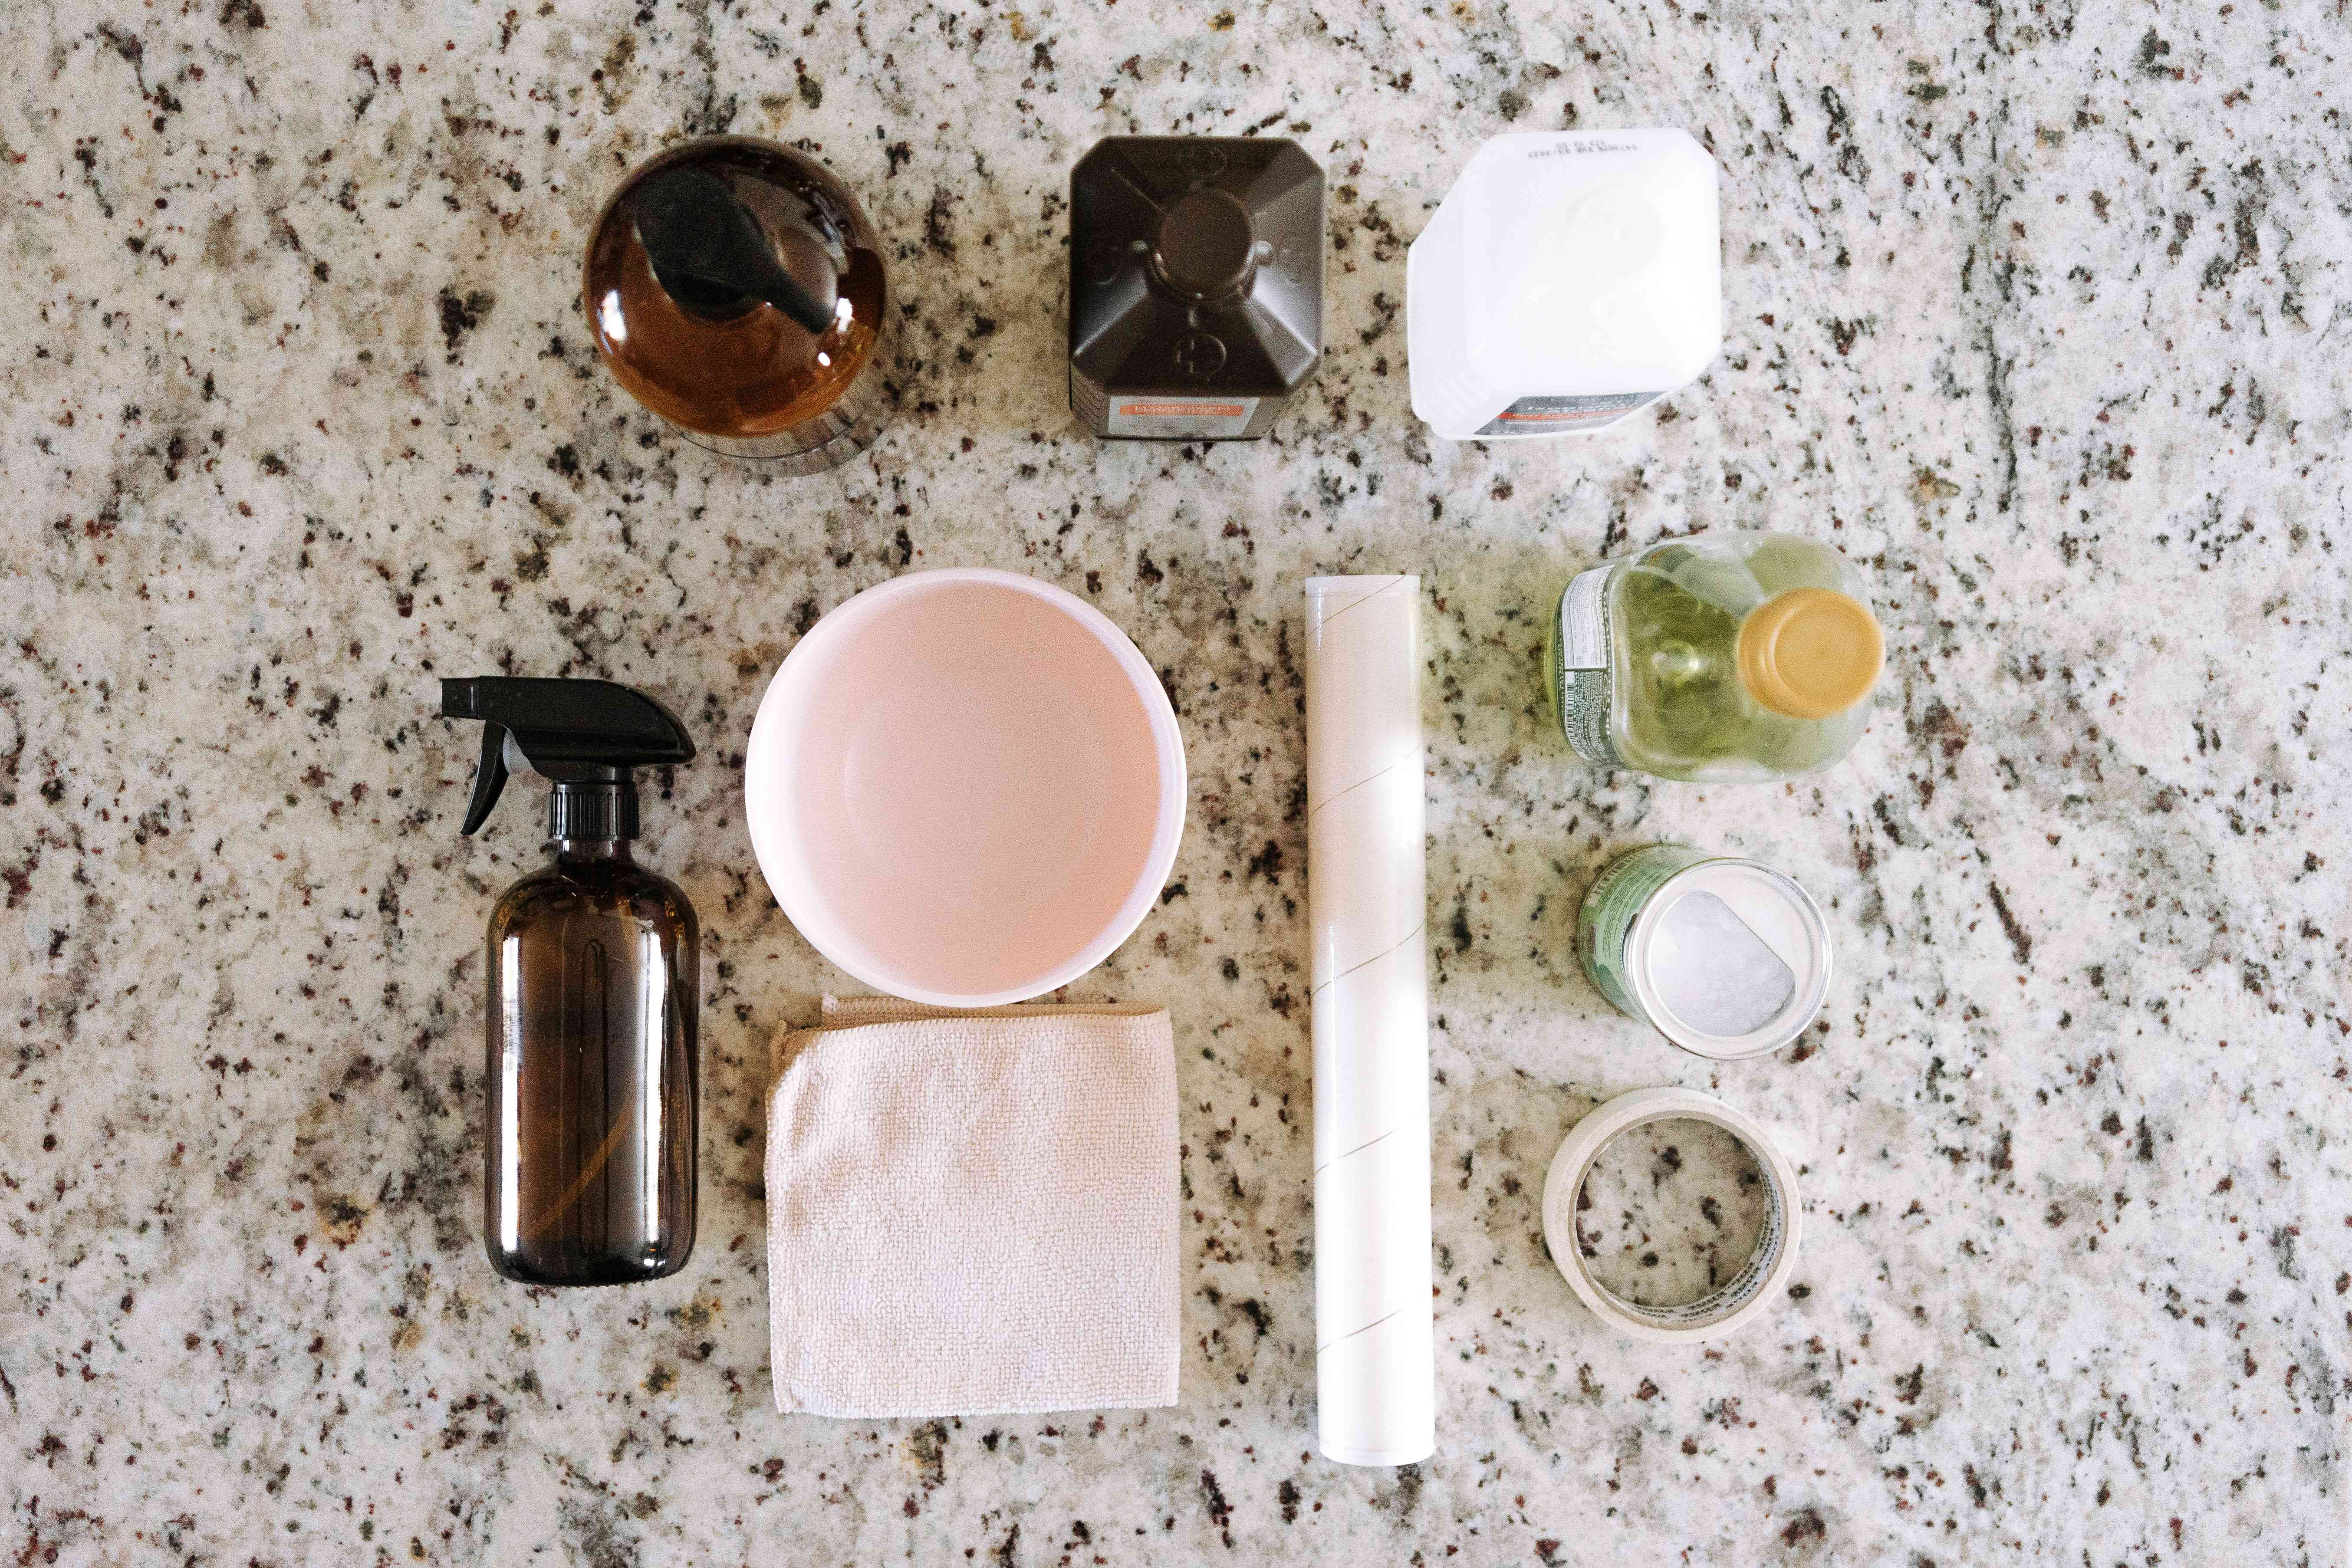 ingredients for cleaning granite